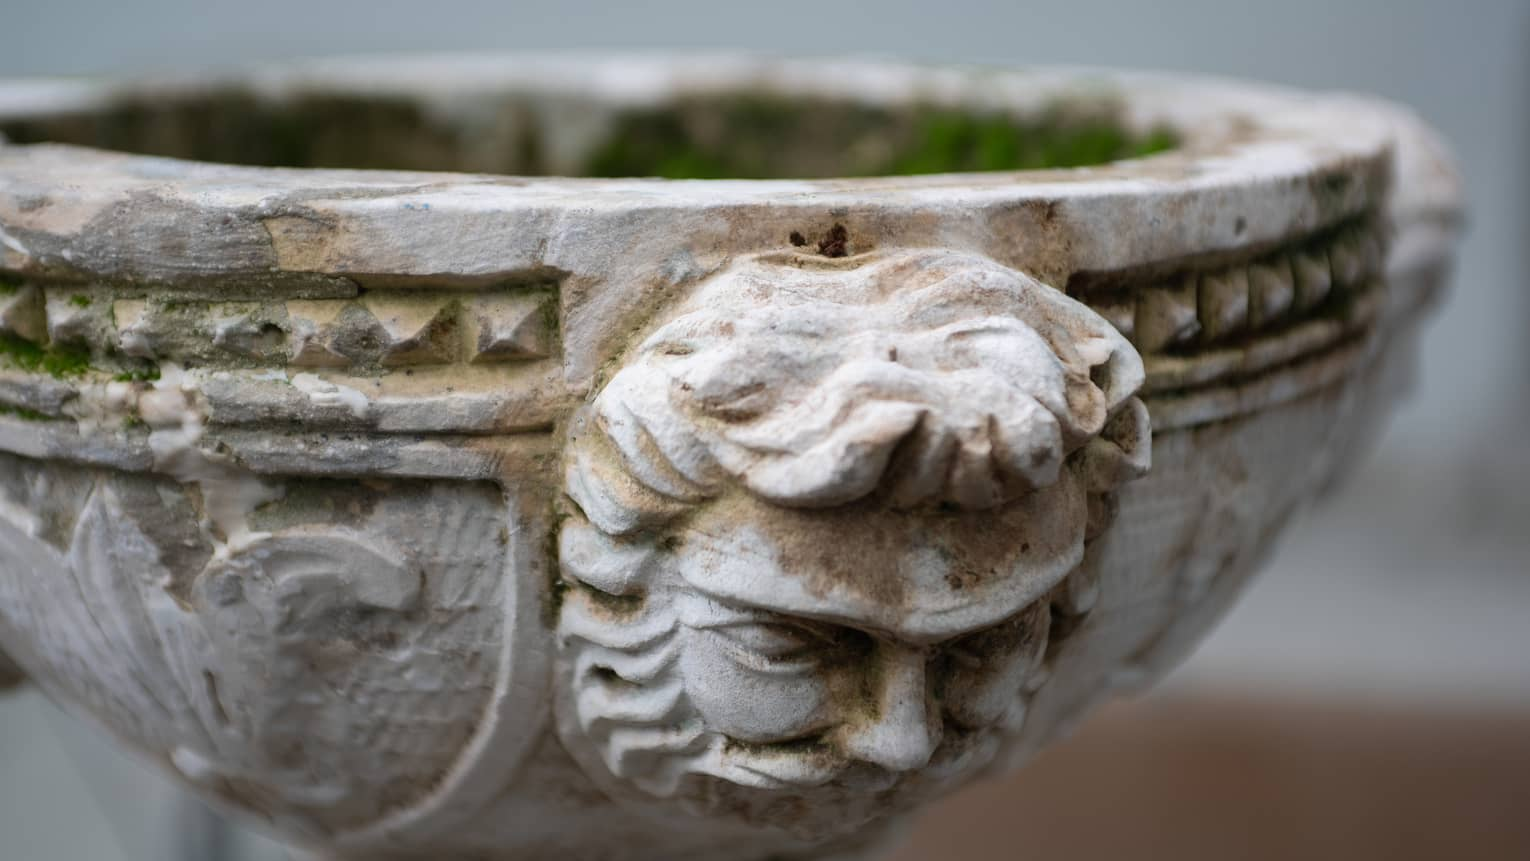 Historic detailing of a face engraved on stone planter